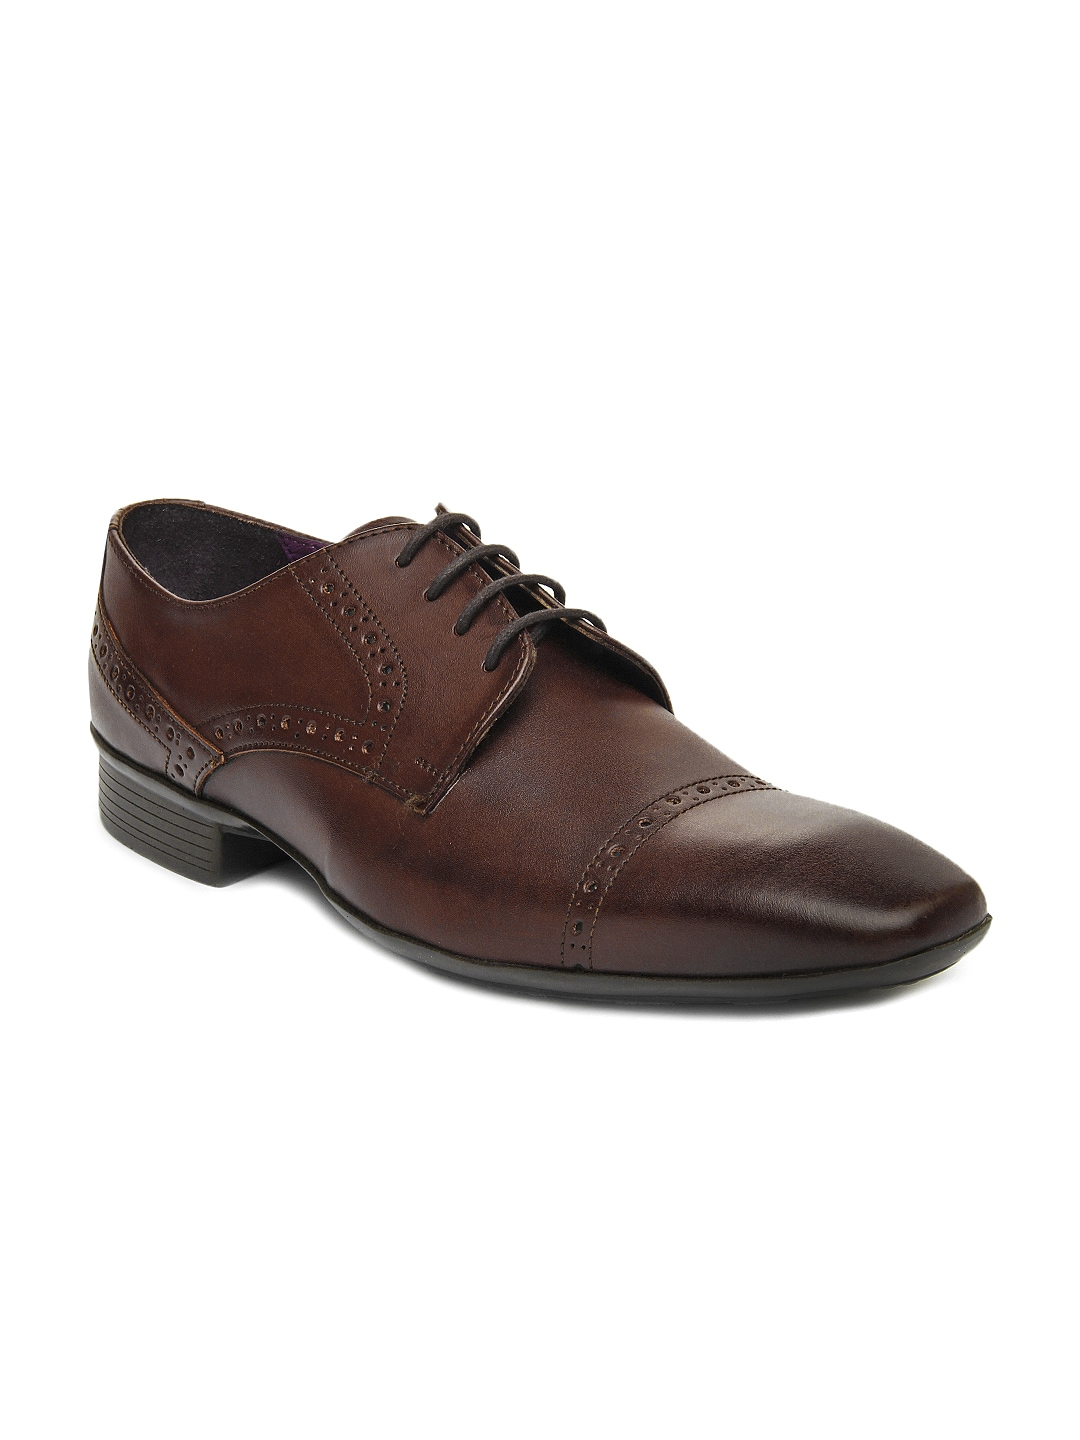 myntra knotty derby brown semi formal shoes 241593